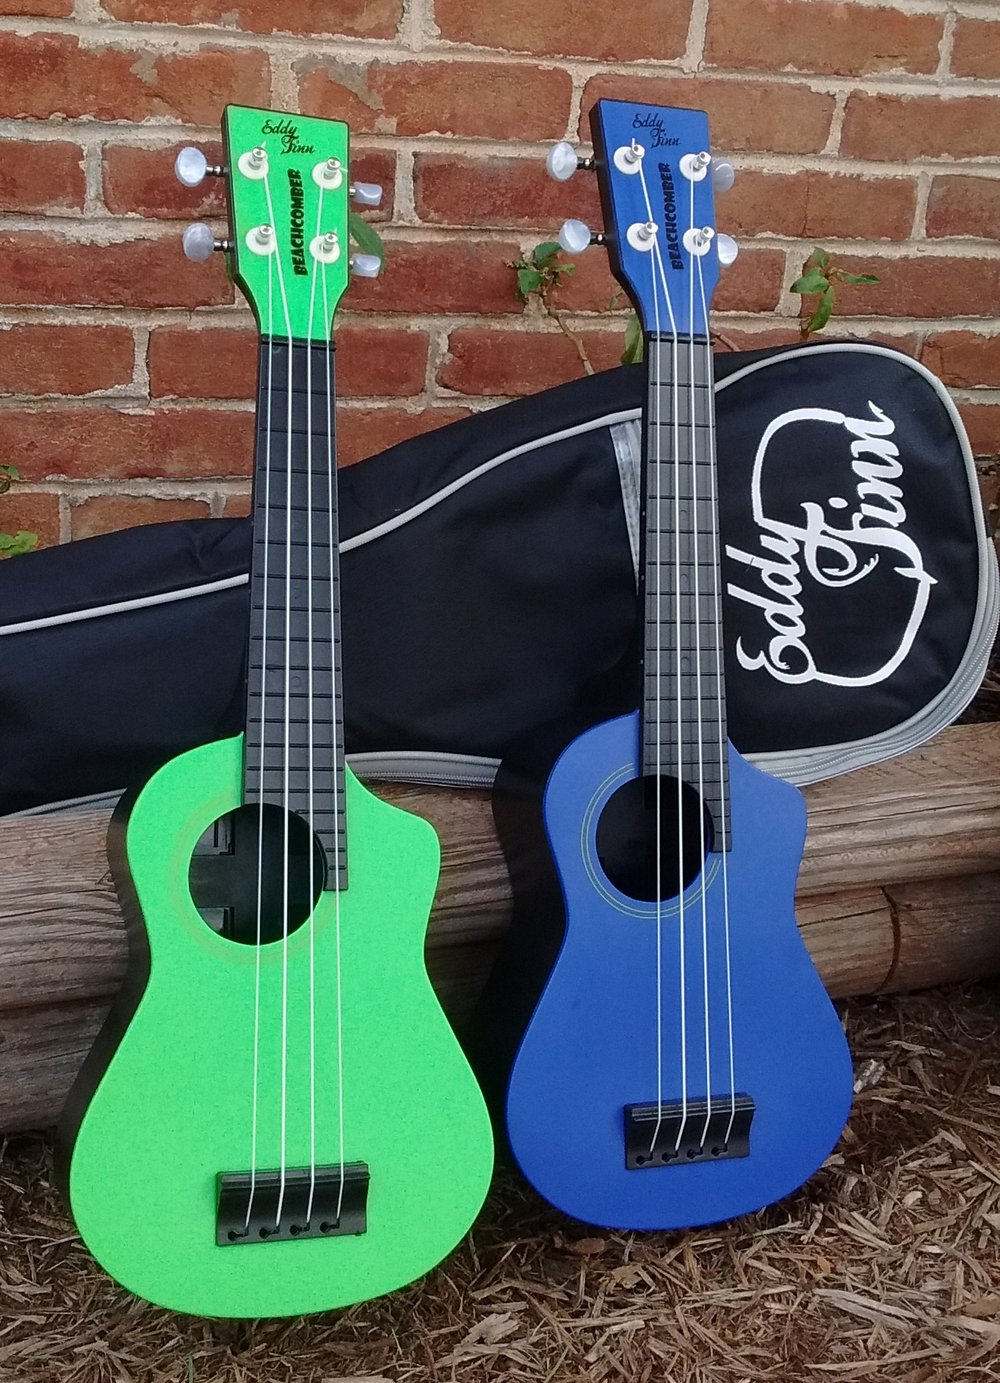 Eddy Finn Beachcomber Soprano Ukuleles - available in Green, Blue, Red, and Orange